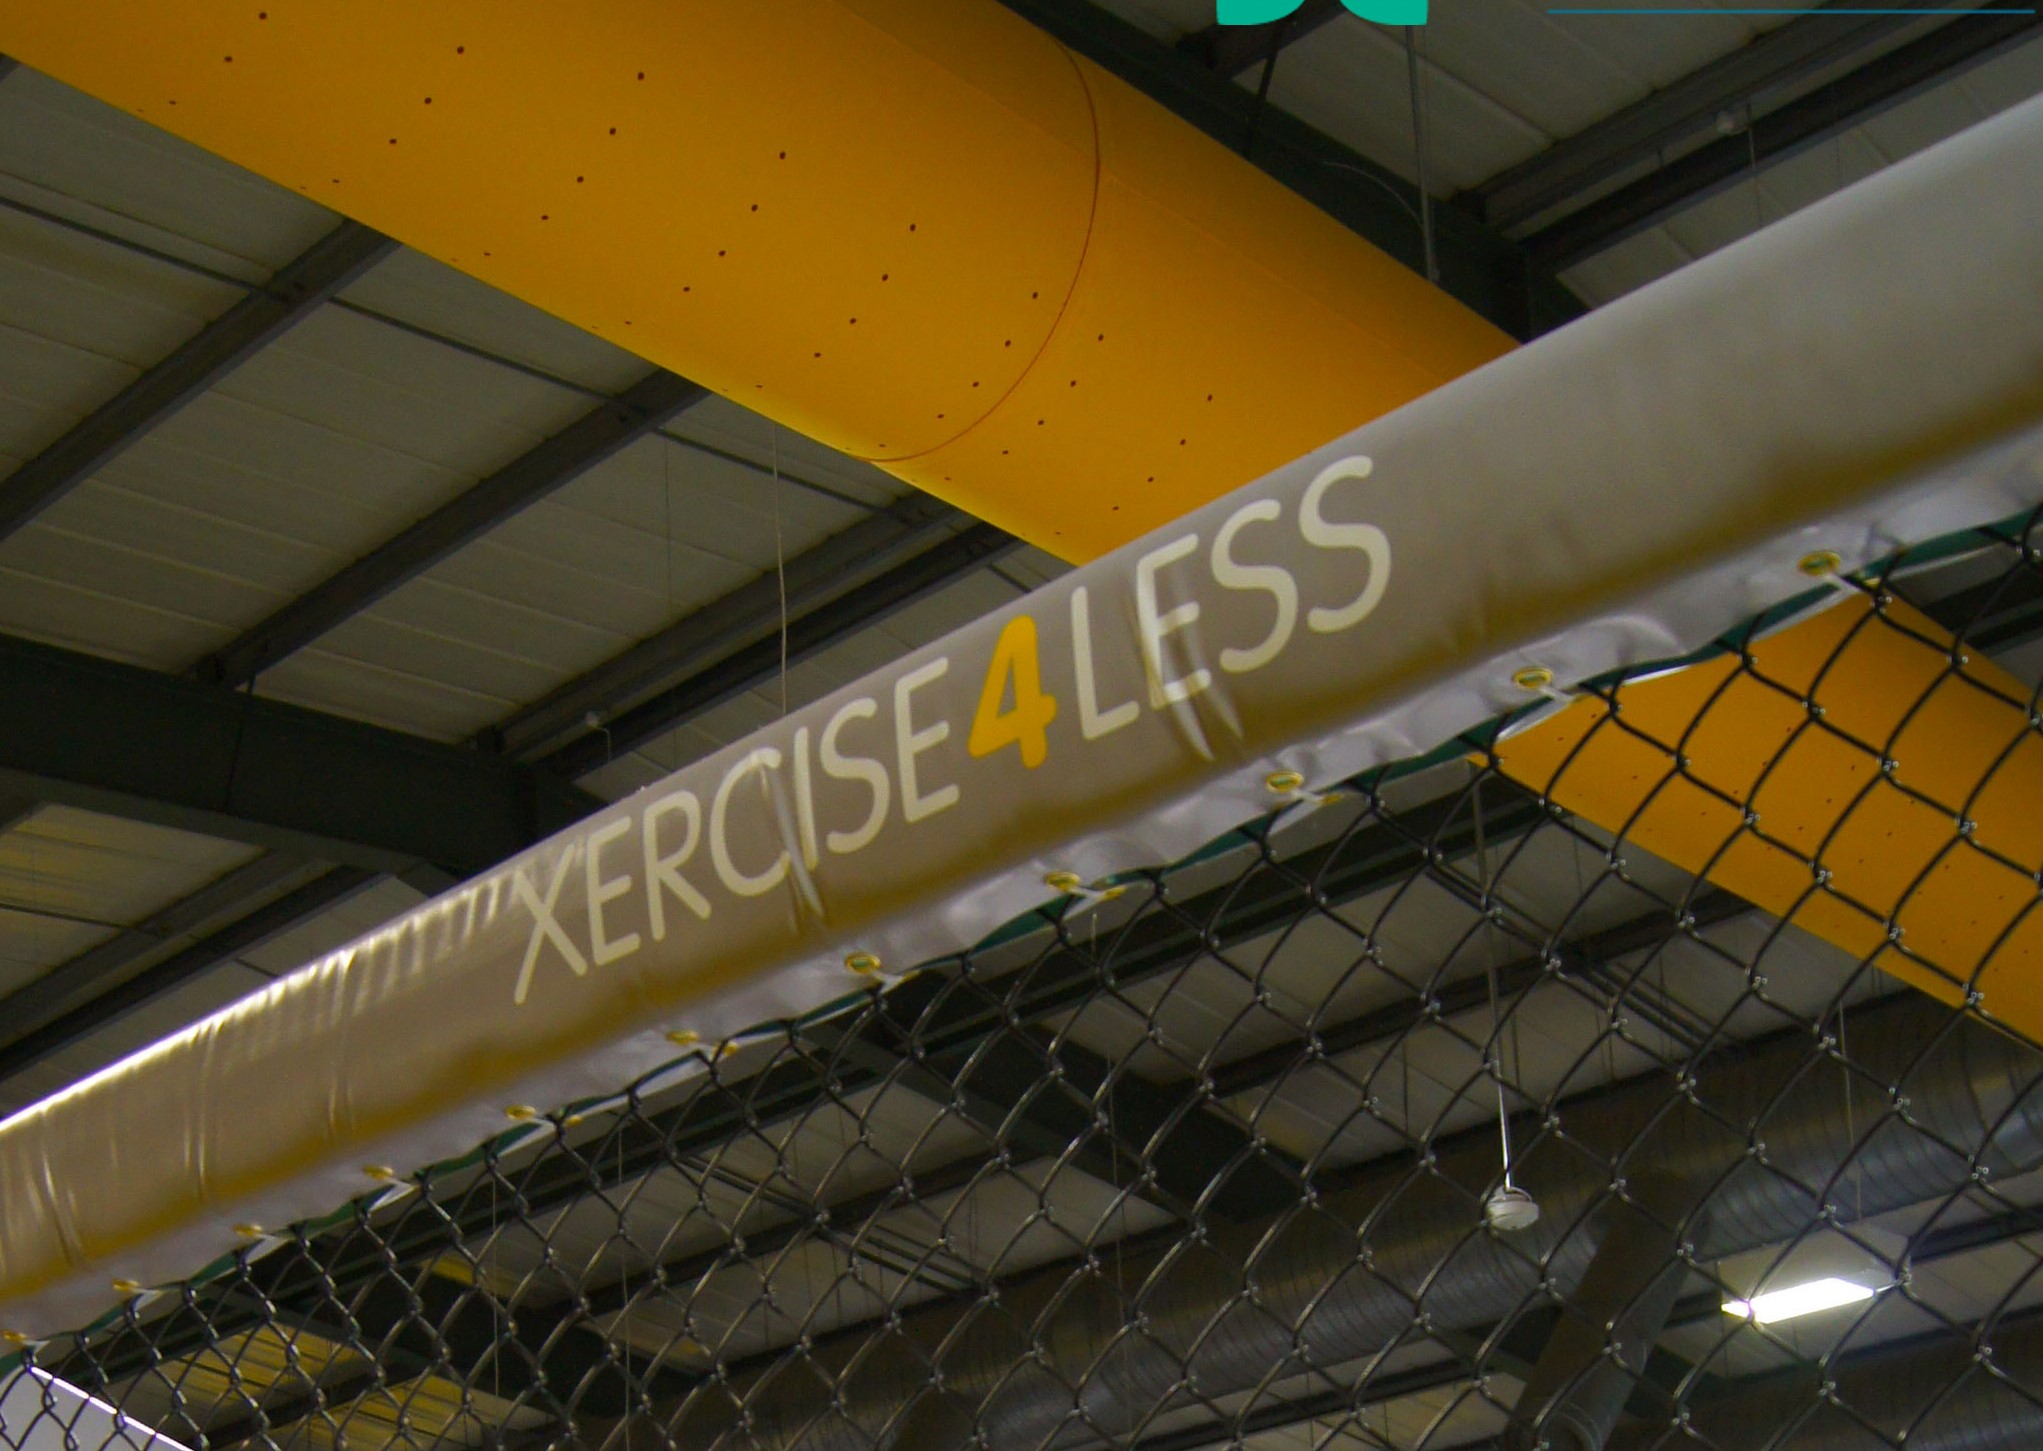 xercise 4 less project